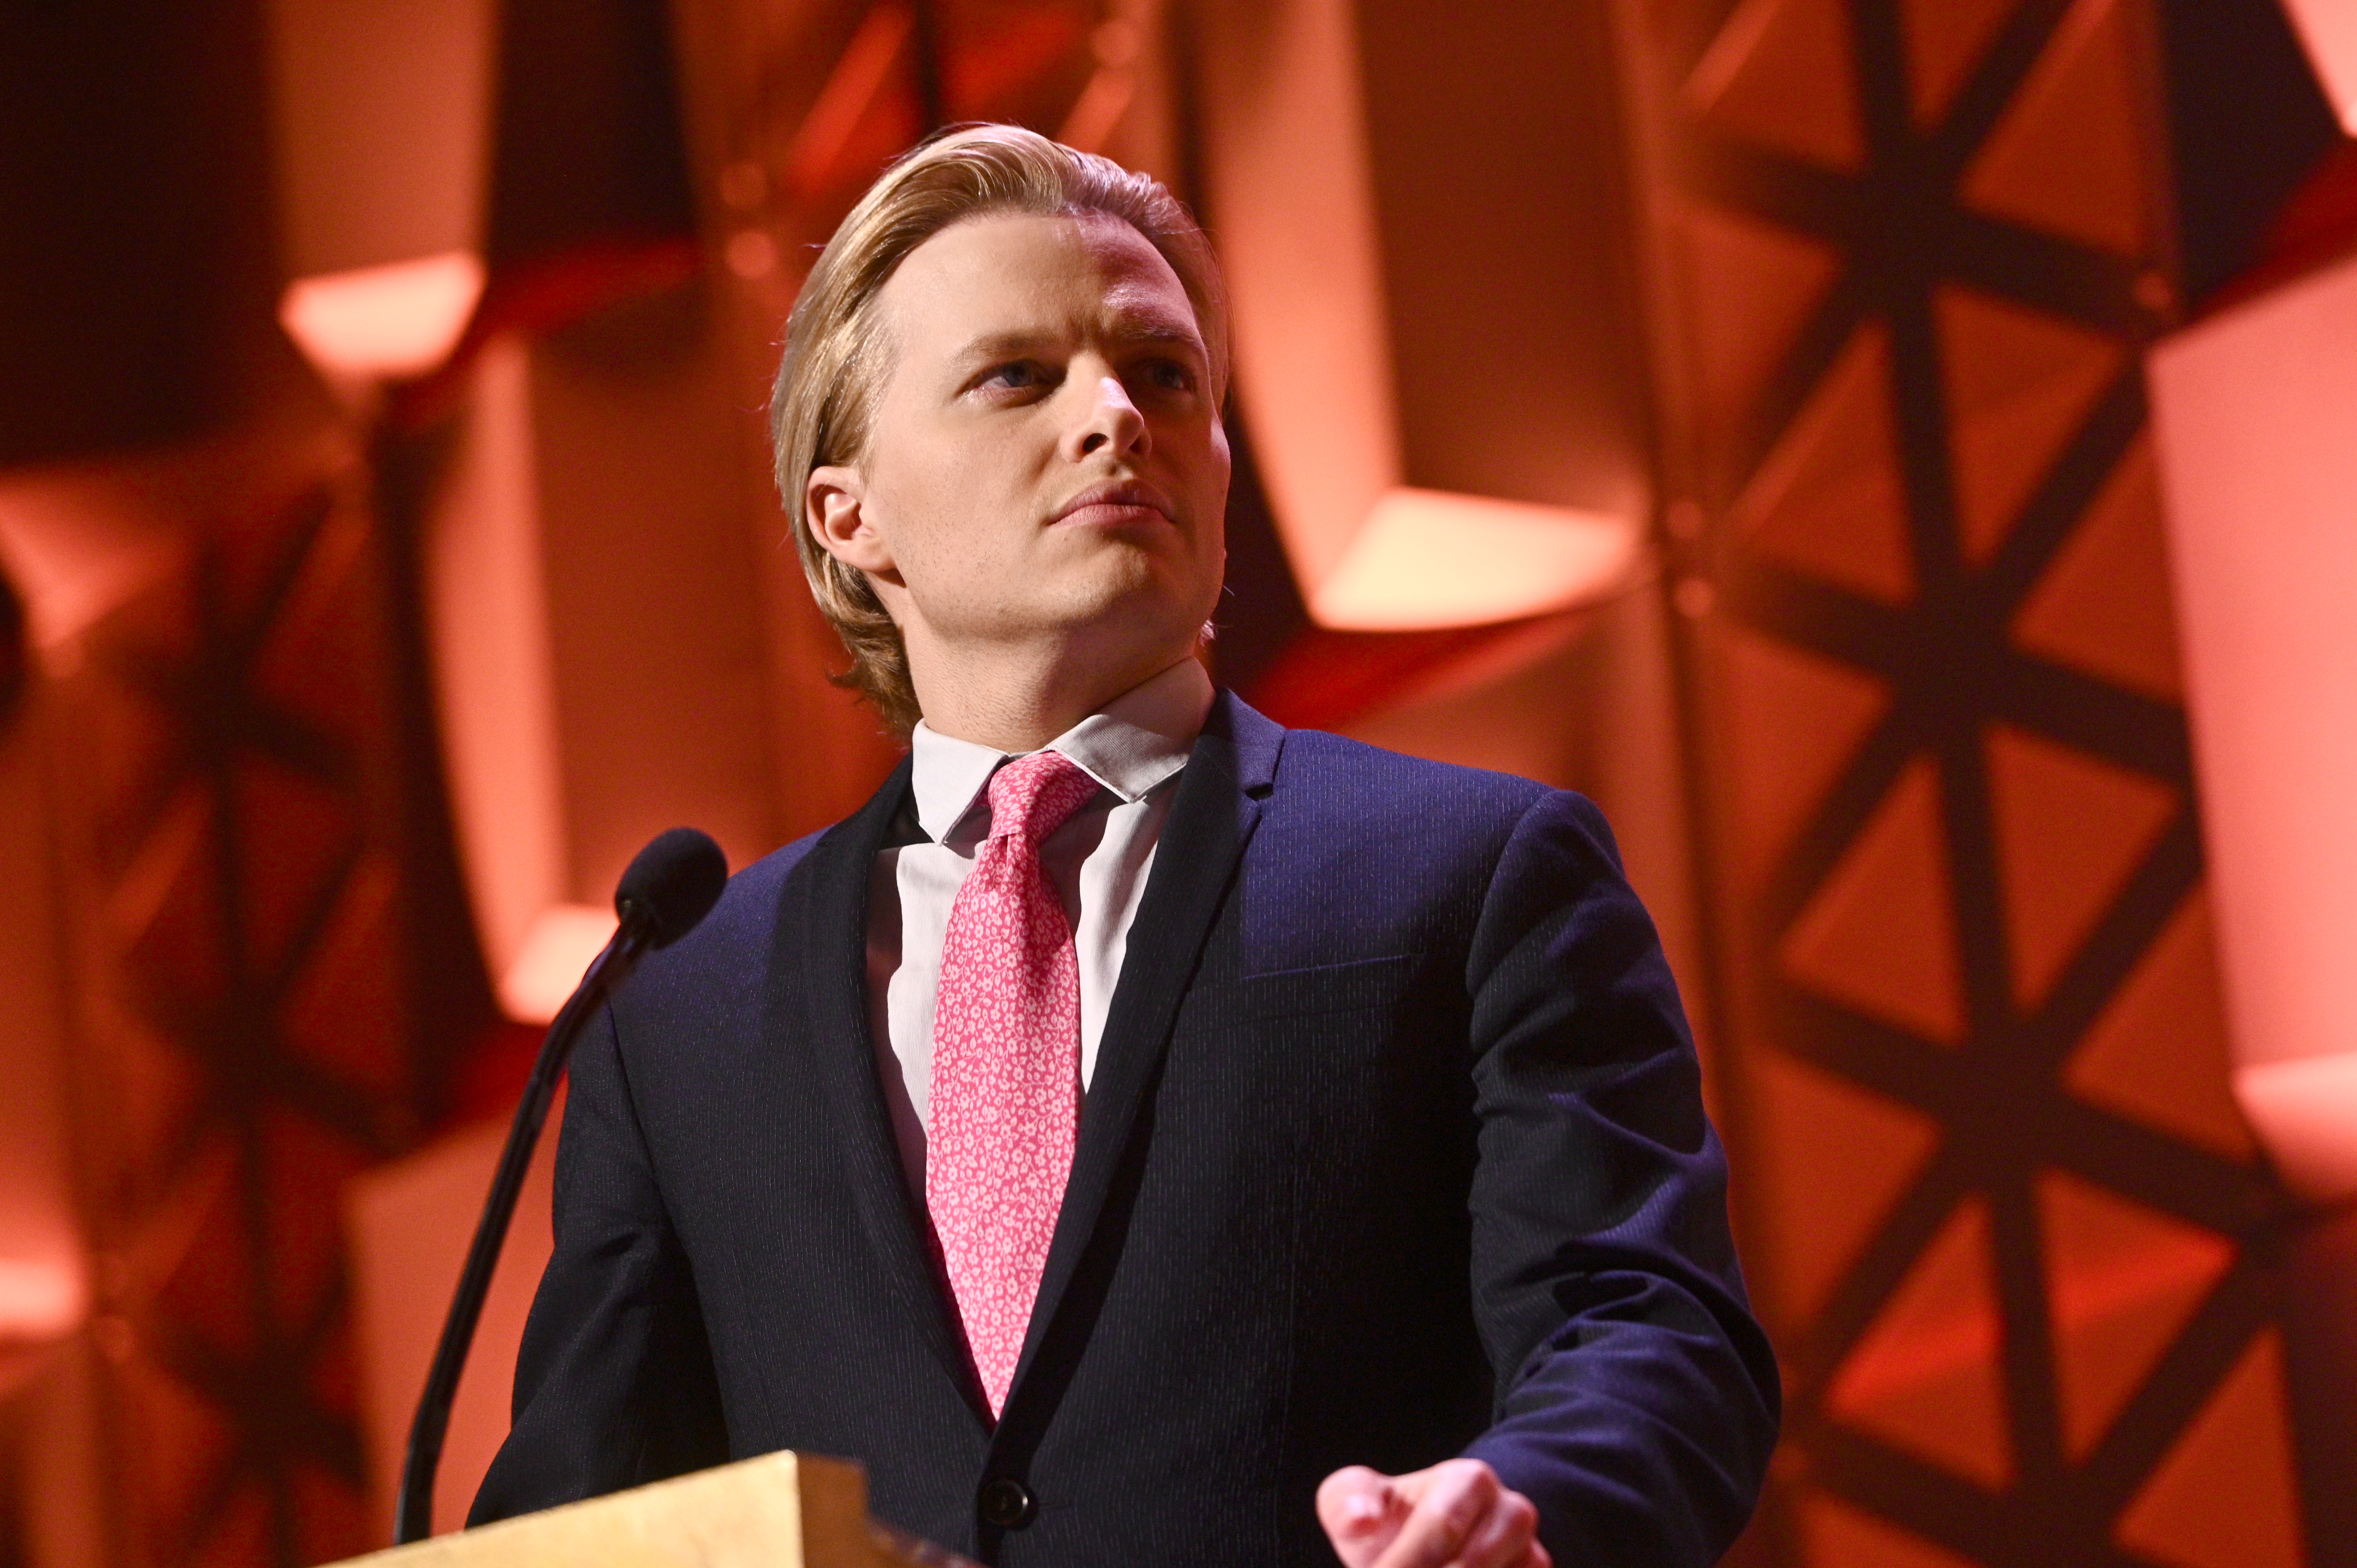 Ronan Farrow speaks onstage at the 78th Annual Peabody Awards Ceremony Sponsored By Mercedes-Benz at Cipriani Wall Street on May 18, 2019 in New York City. (Mike Pont/Getty Images for Peabody)